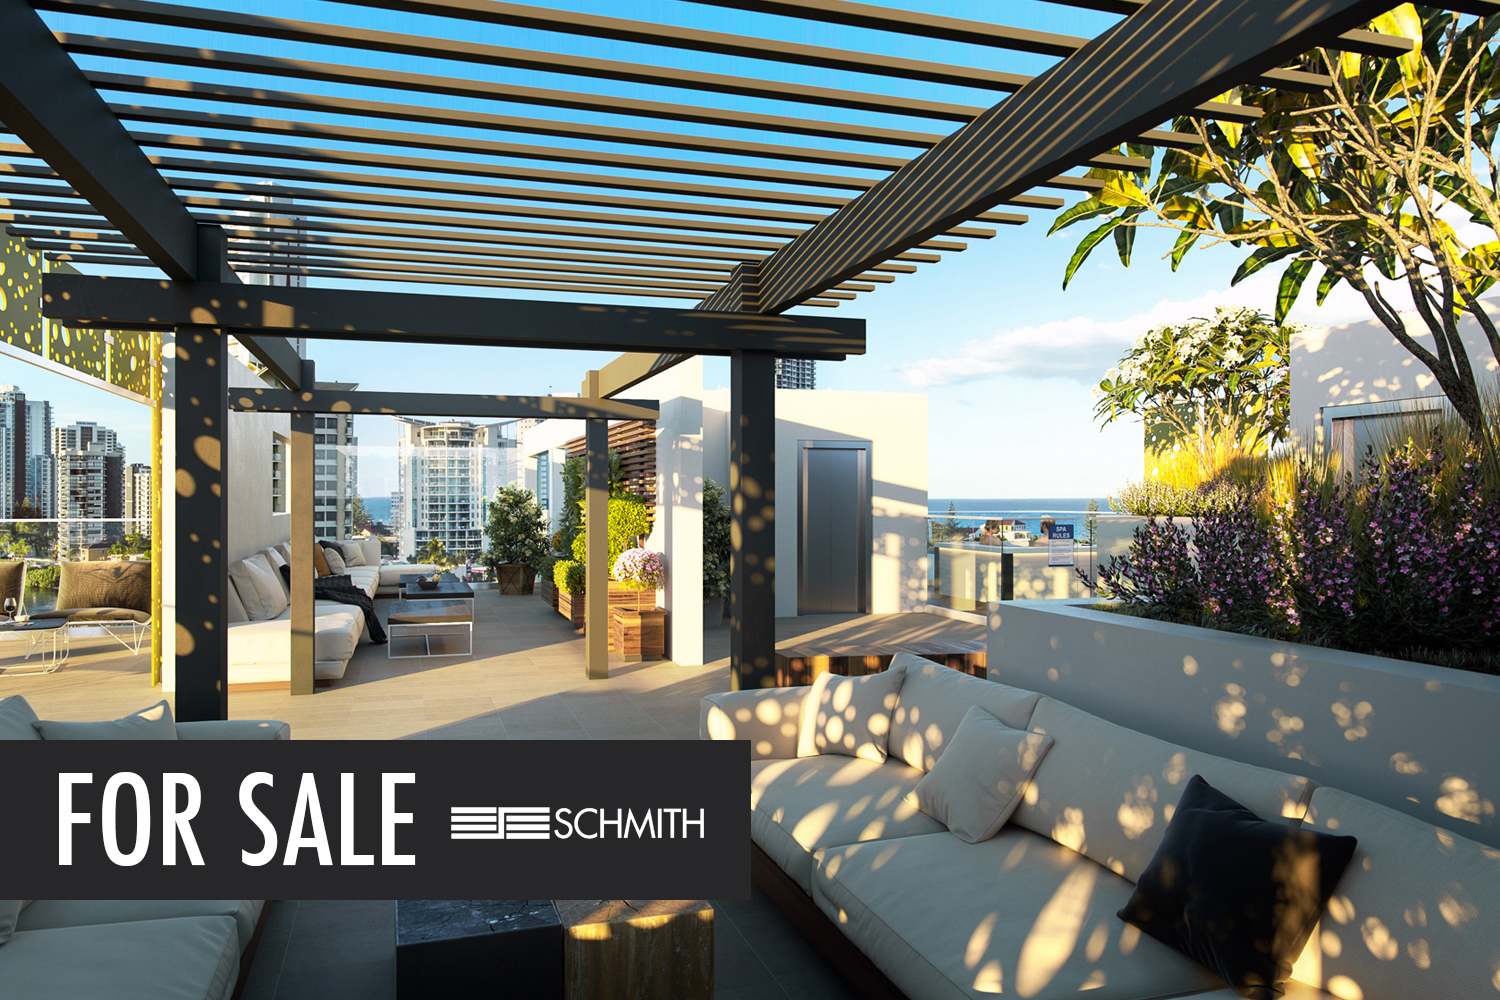 SERENITY  14 CANNES AVENUE, SURFERS PARADISE 4217  FIND OUT MORE